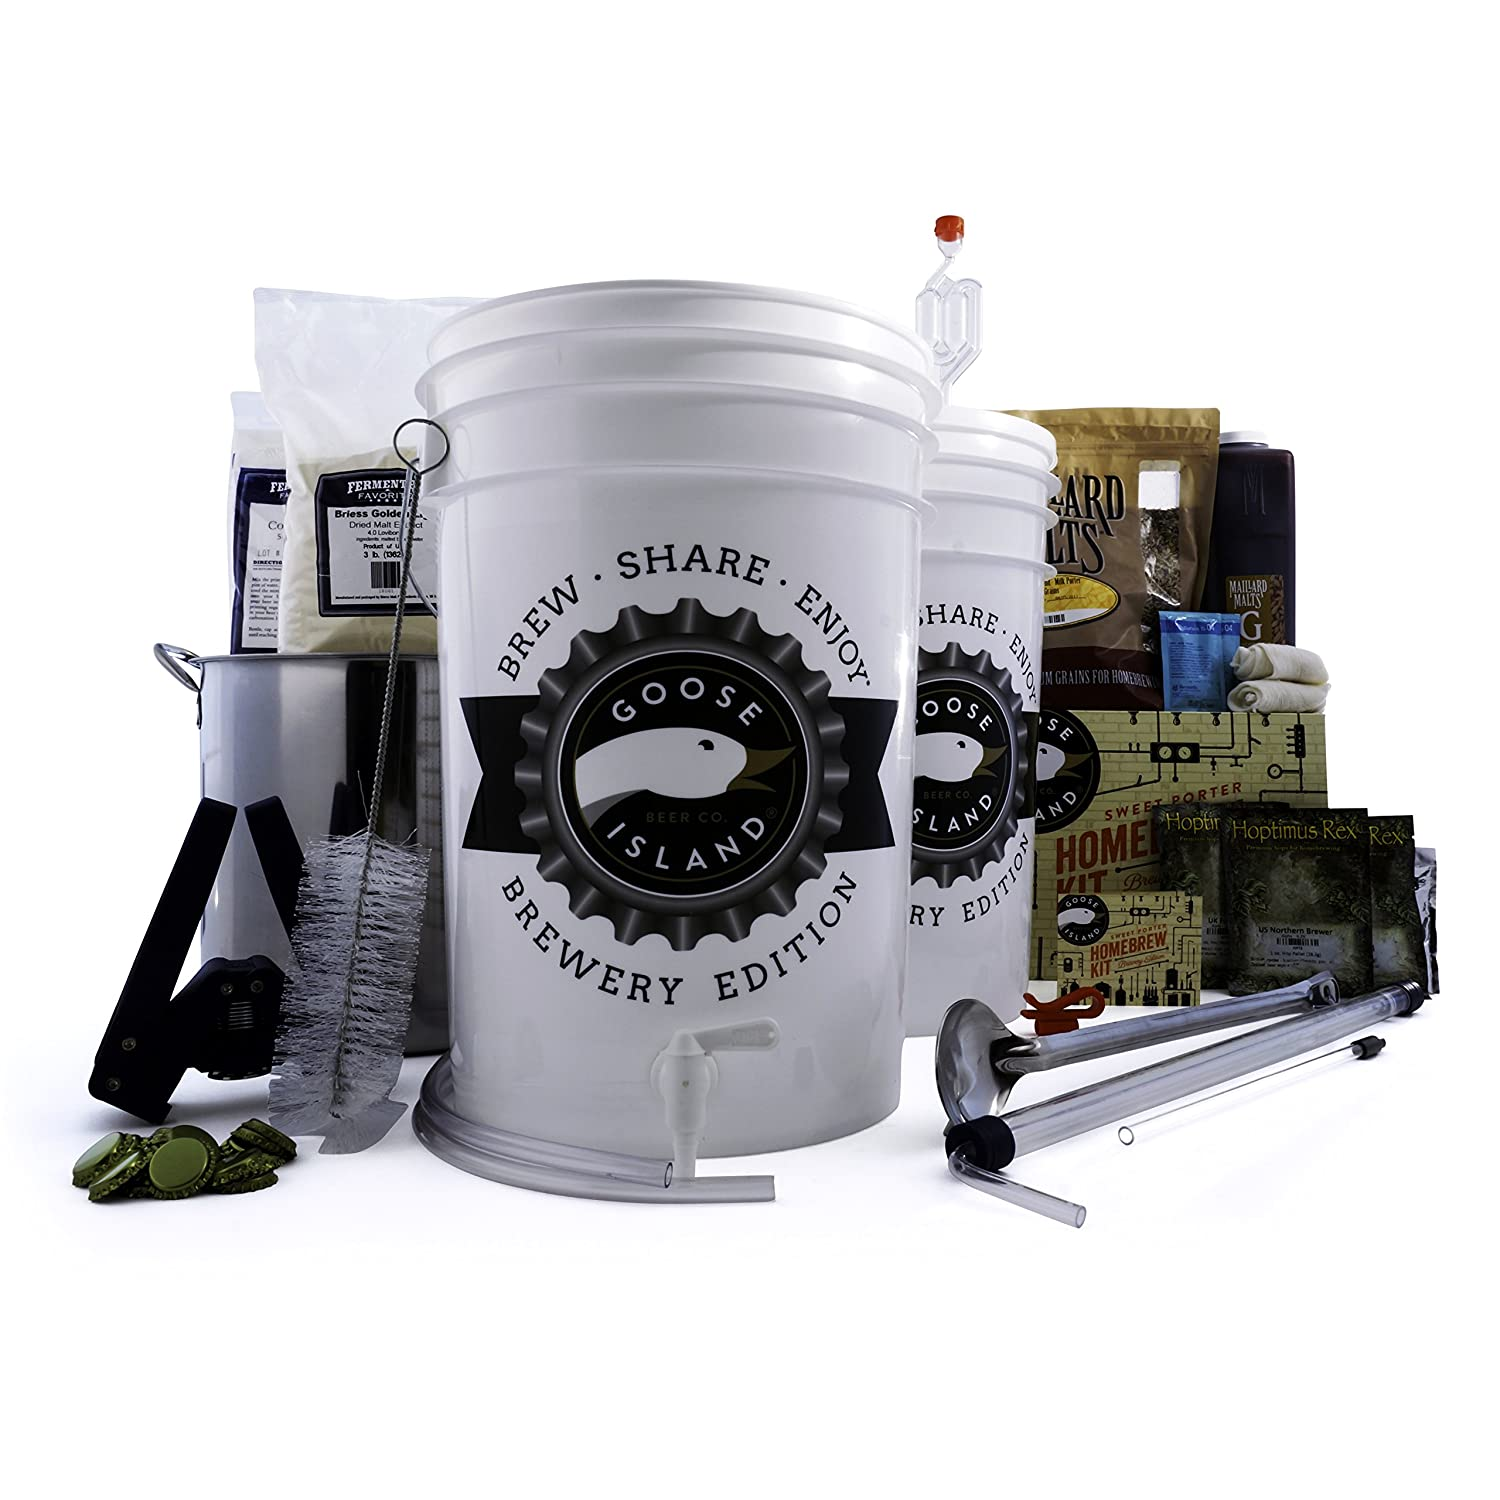 Northern Brewer - Goose Island Beer Brewing Equipment Starter Kit - 5 Gallon - Brew Share Enjoy Brewery Edition Goose Island Sweet Porter Recipe - Includes Brew Kettle